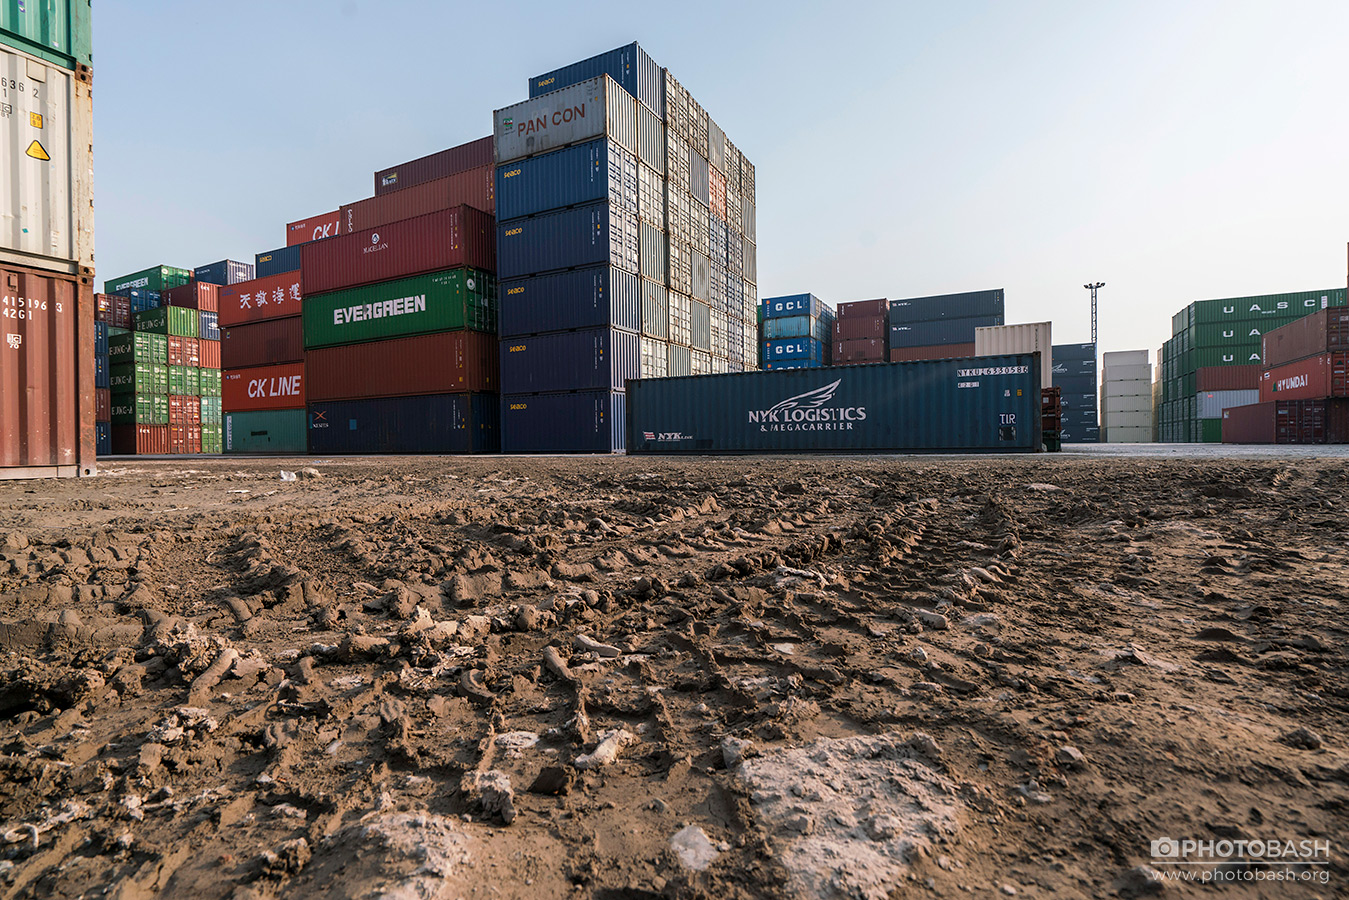 Shipping-Containers-Muddy-Ground.jpg